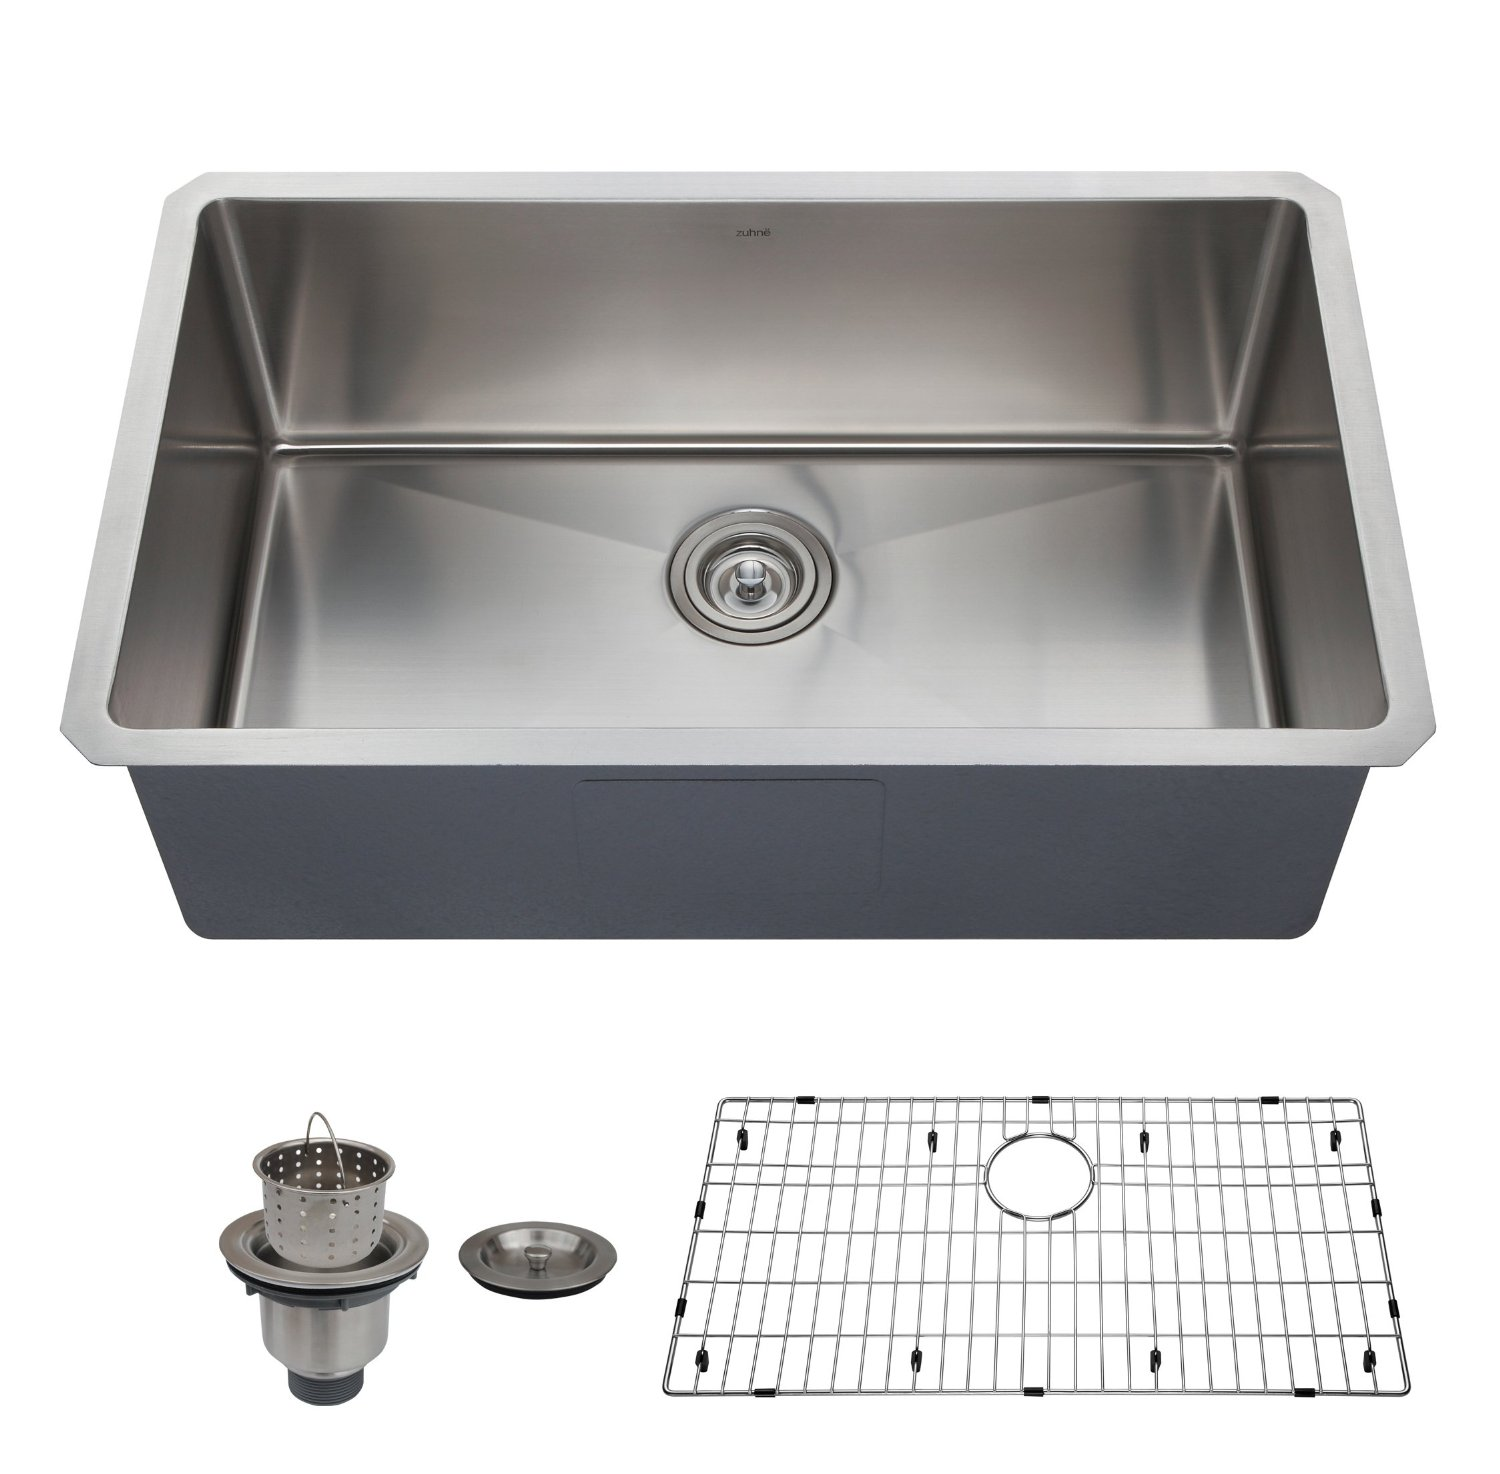 stainless iron laminate basin amazing in energize to undermount then plus sink discount comfort composite sinks steel eli countertop cast vs ikea best of built and the kitchen installation granite single